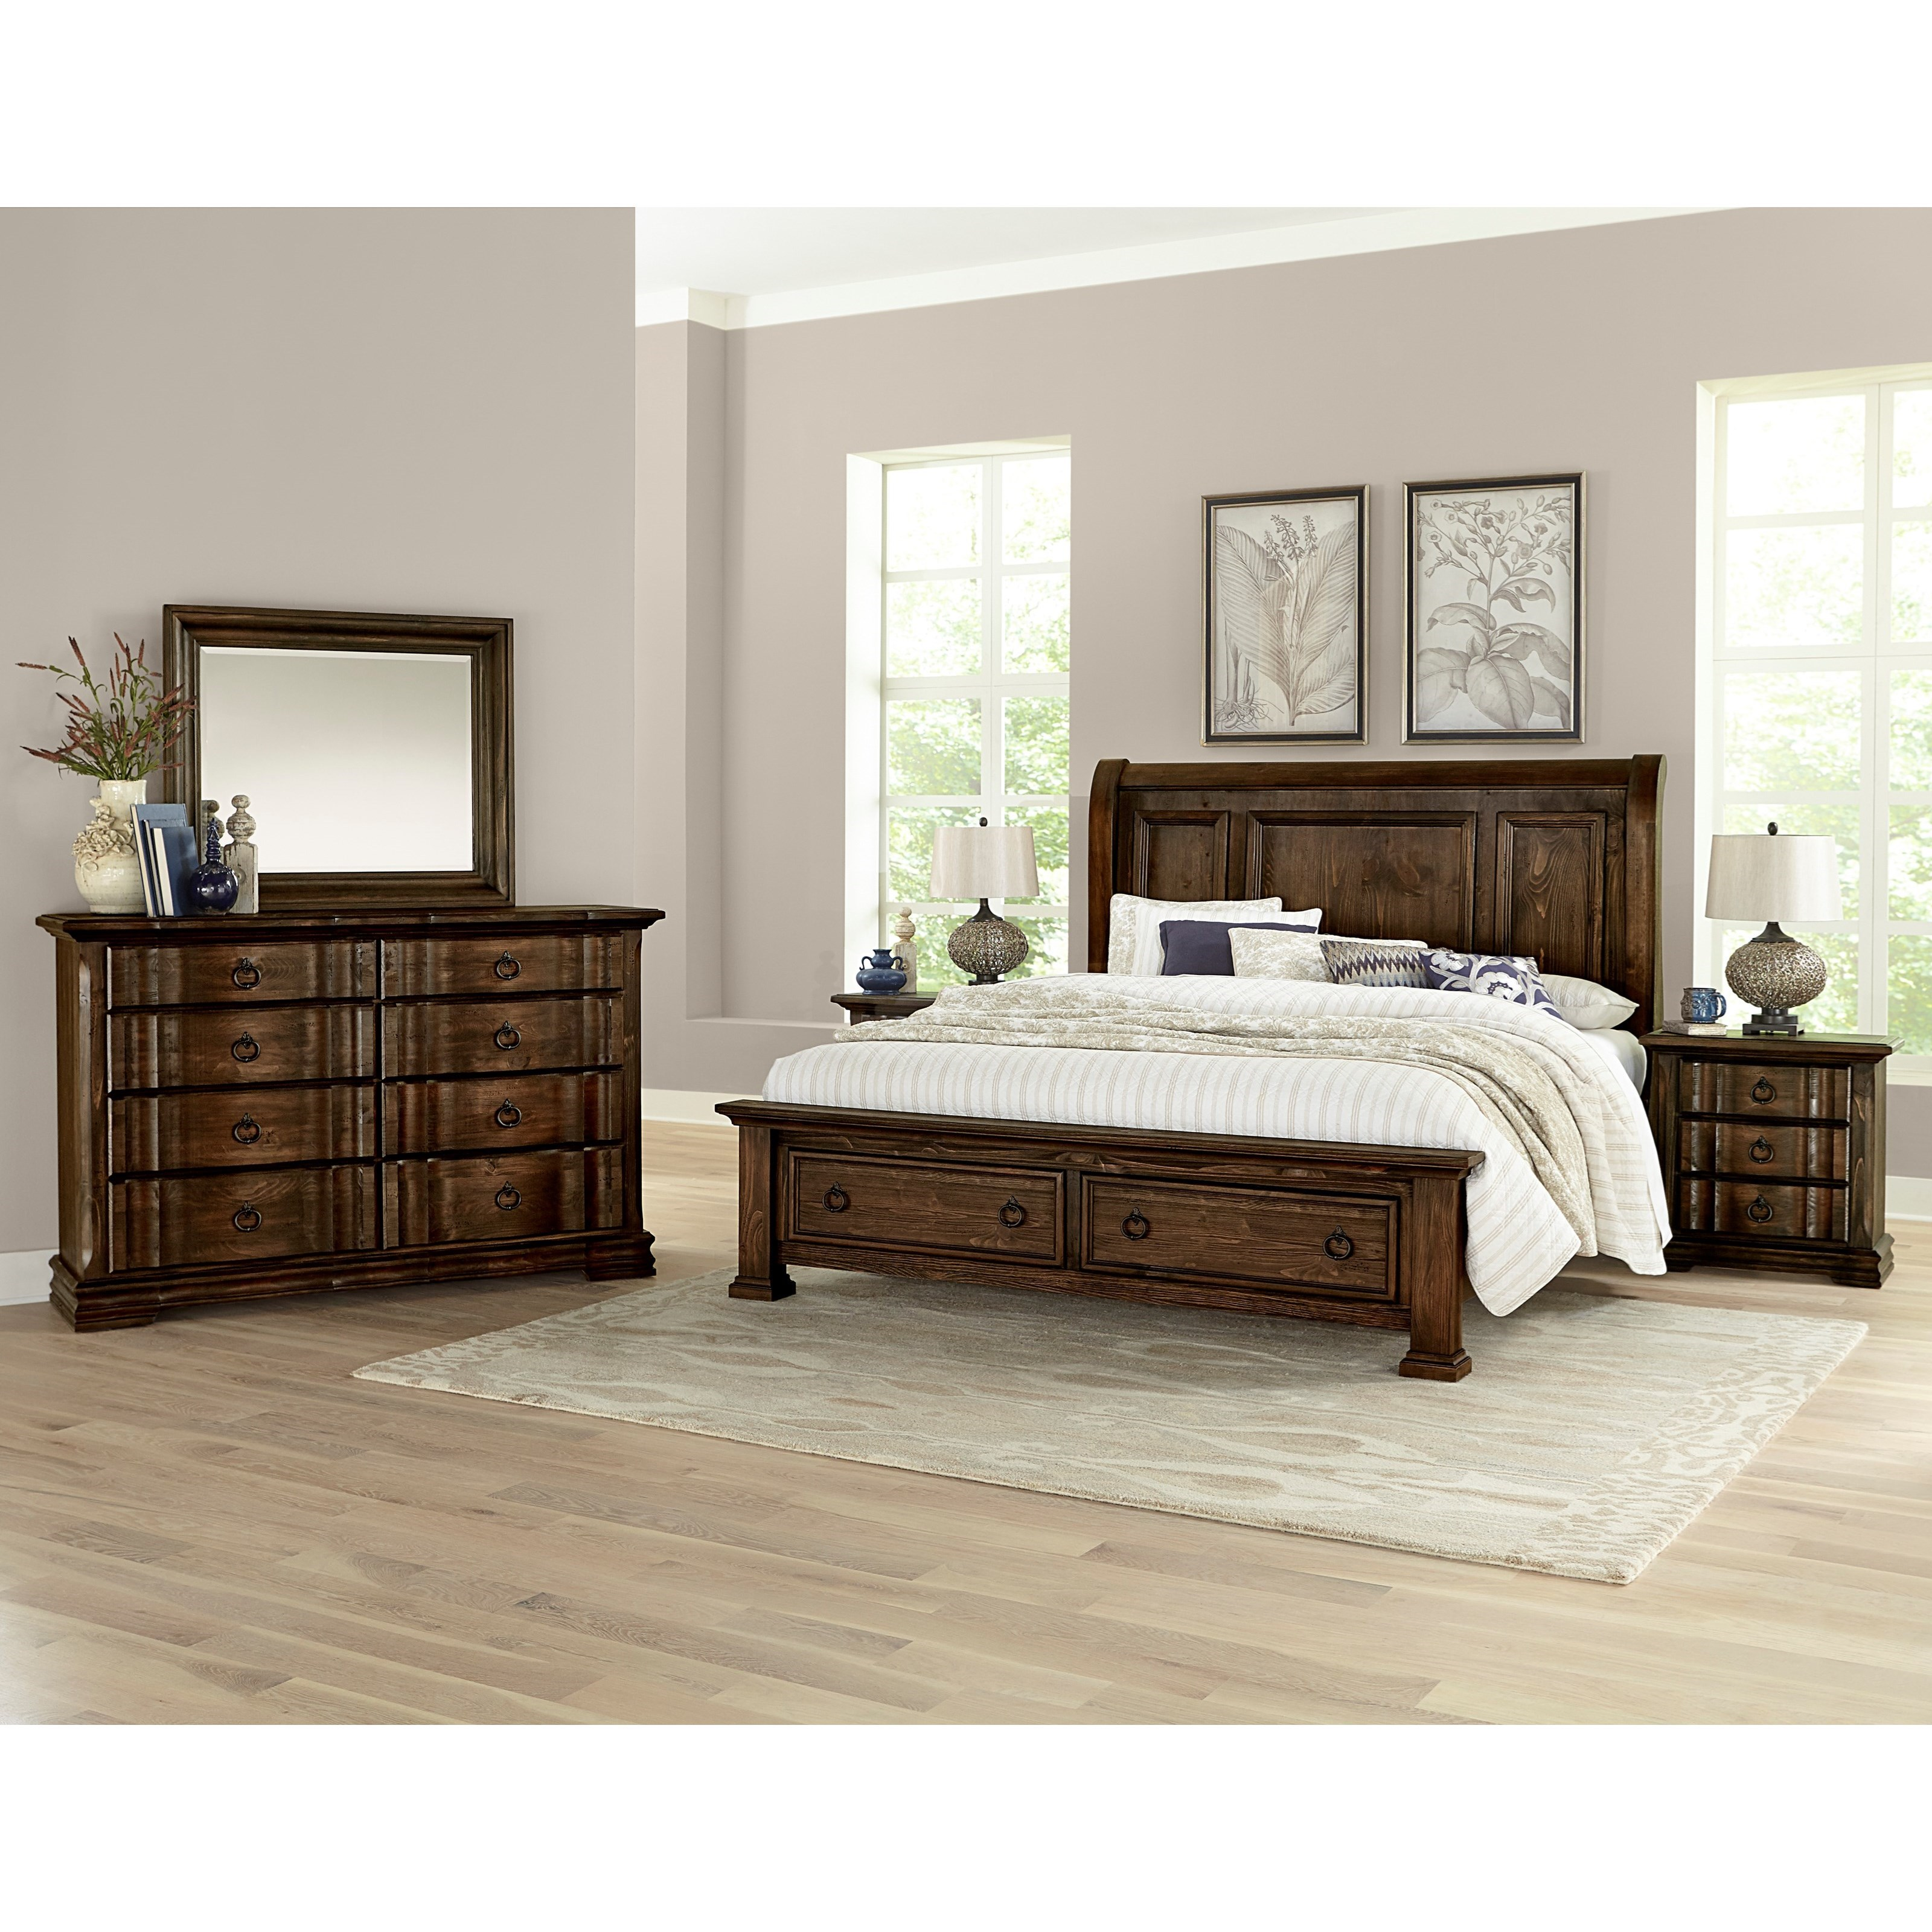 Vaughan Bassett Rustic Hills King Sleigh Bed With Storage Footboard Value City Furniture